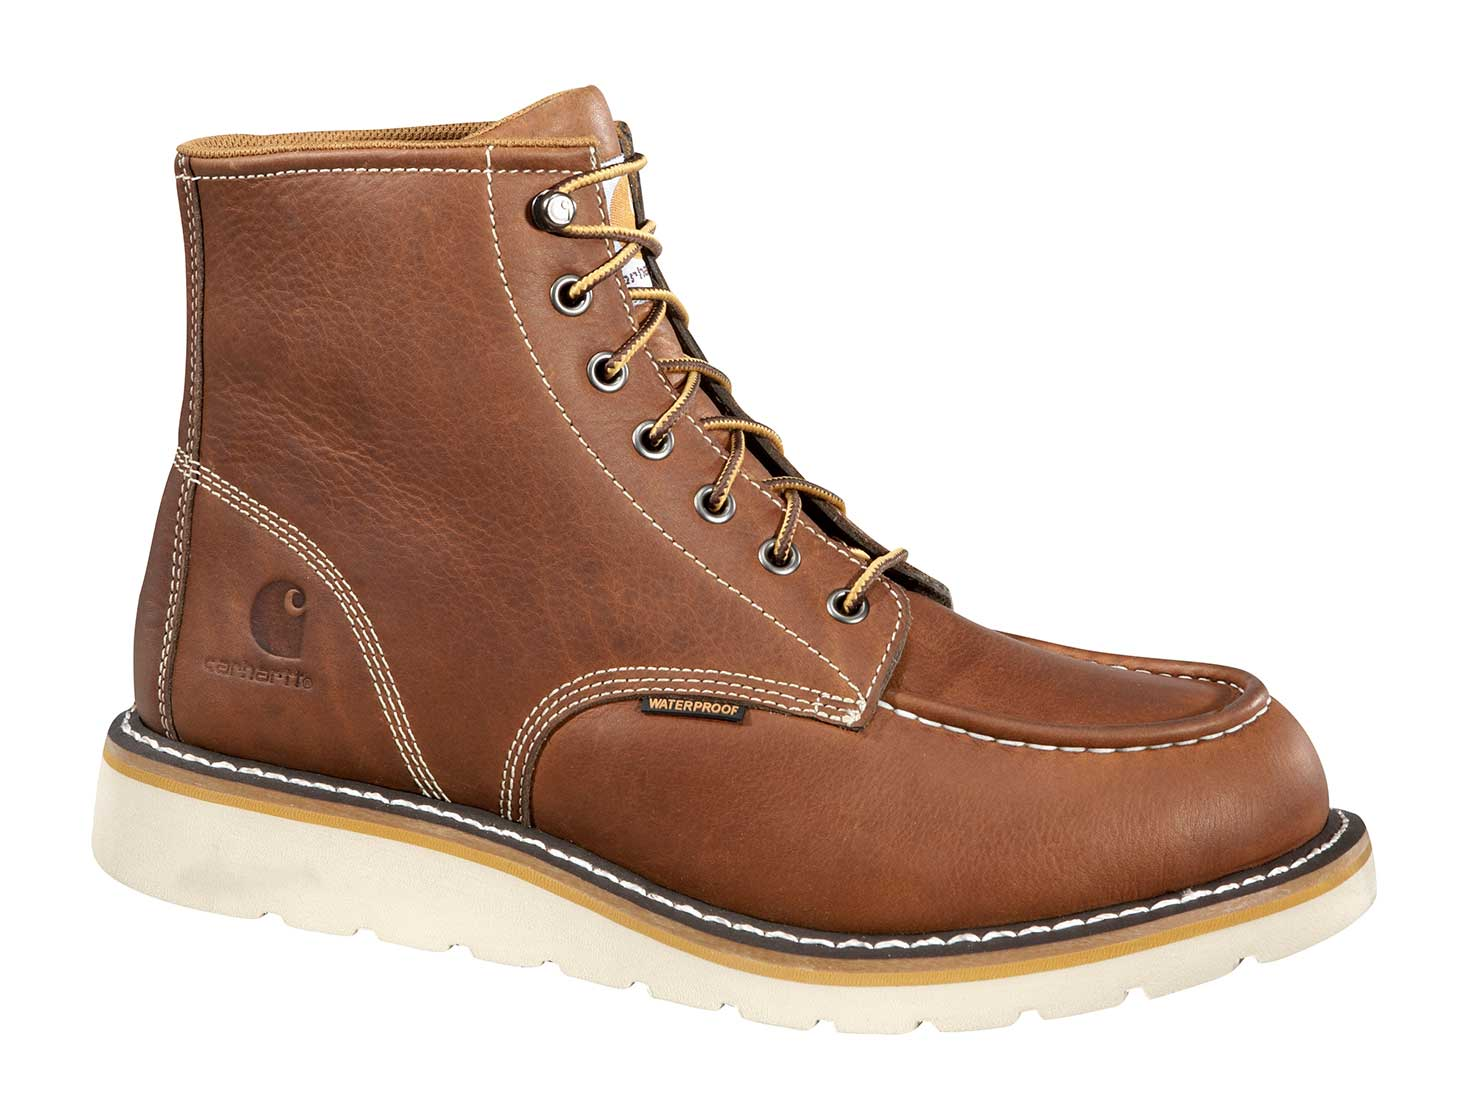 Carhartt Mens Tan Leather Waterproof Moc-Toe Wedge Steel Safety Toe 6-inch lace-up Work Boot